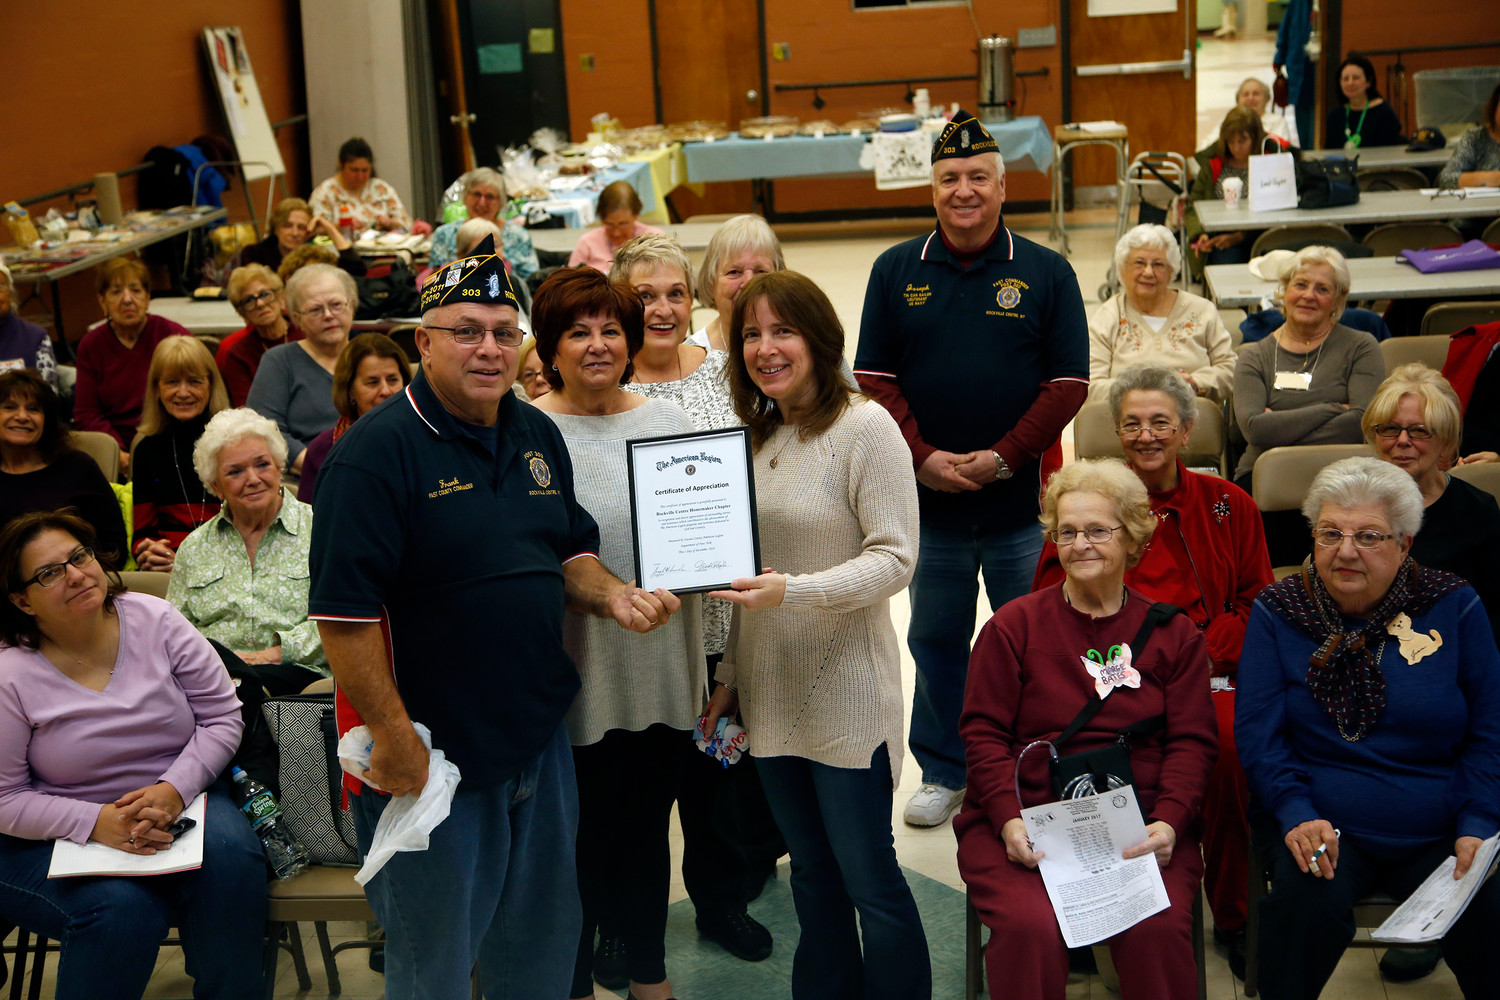 The Rockville Centre Homemakers continued its tradition of donating socks to local veterans. Above, American Legion Post 303 Commander Frank Colon Jr. and past commander Joseph Scarola, pictured last winter, presented the group's council co-presidents Karen Alterson, left, and Marianne Grandazzo with a certificate of appreciation.